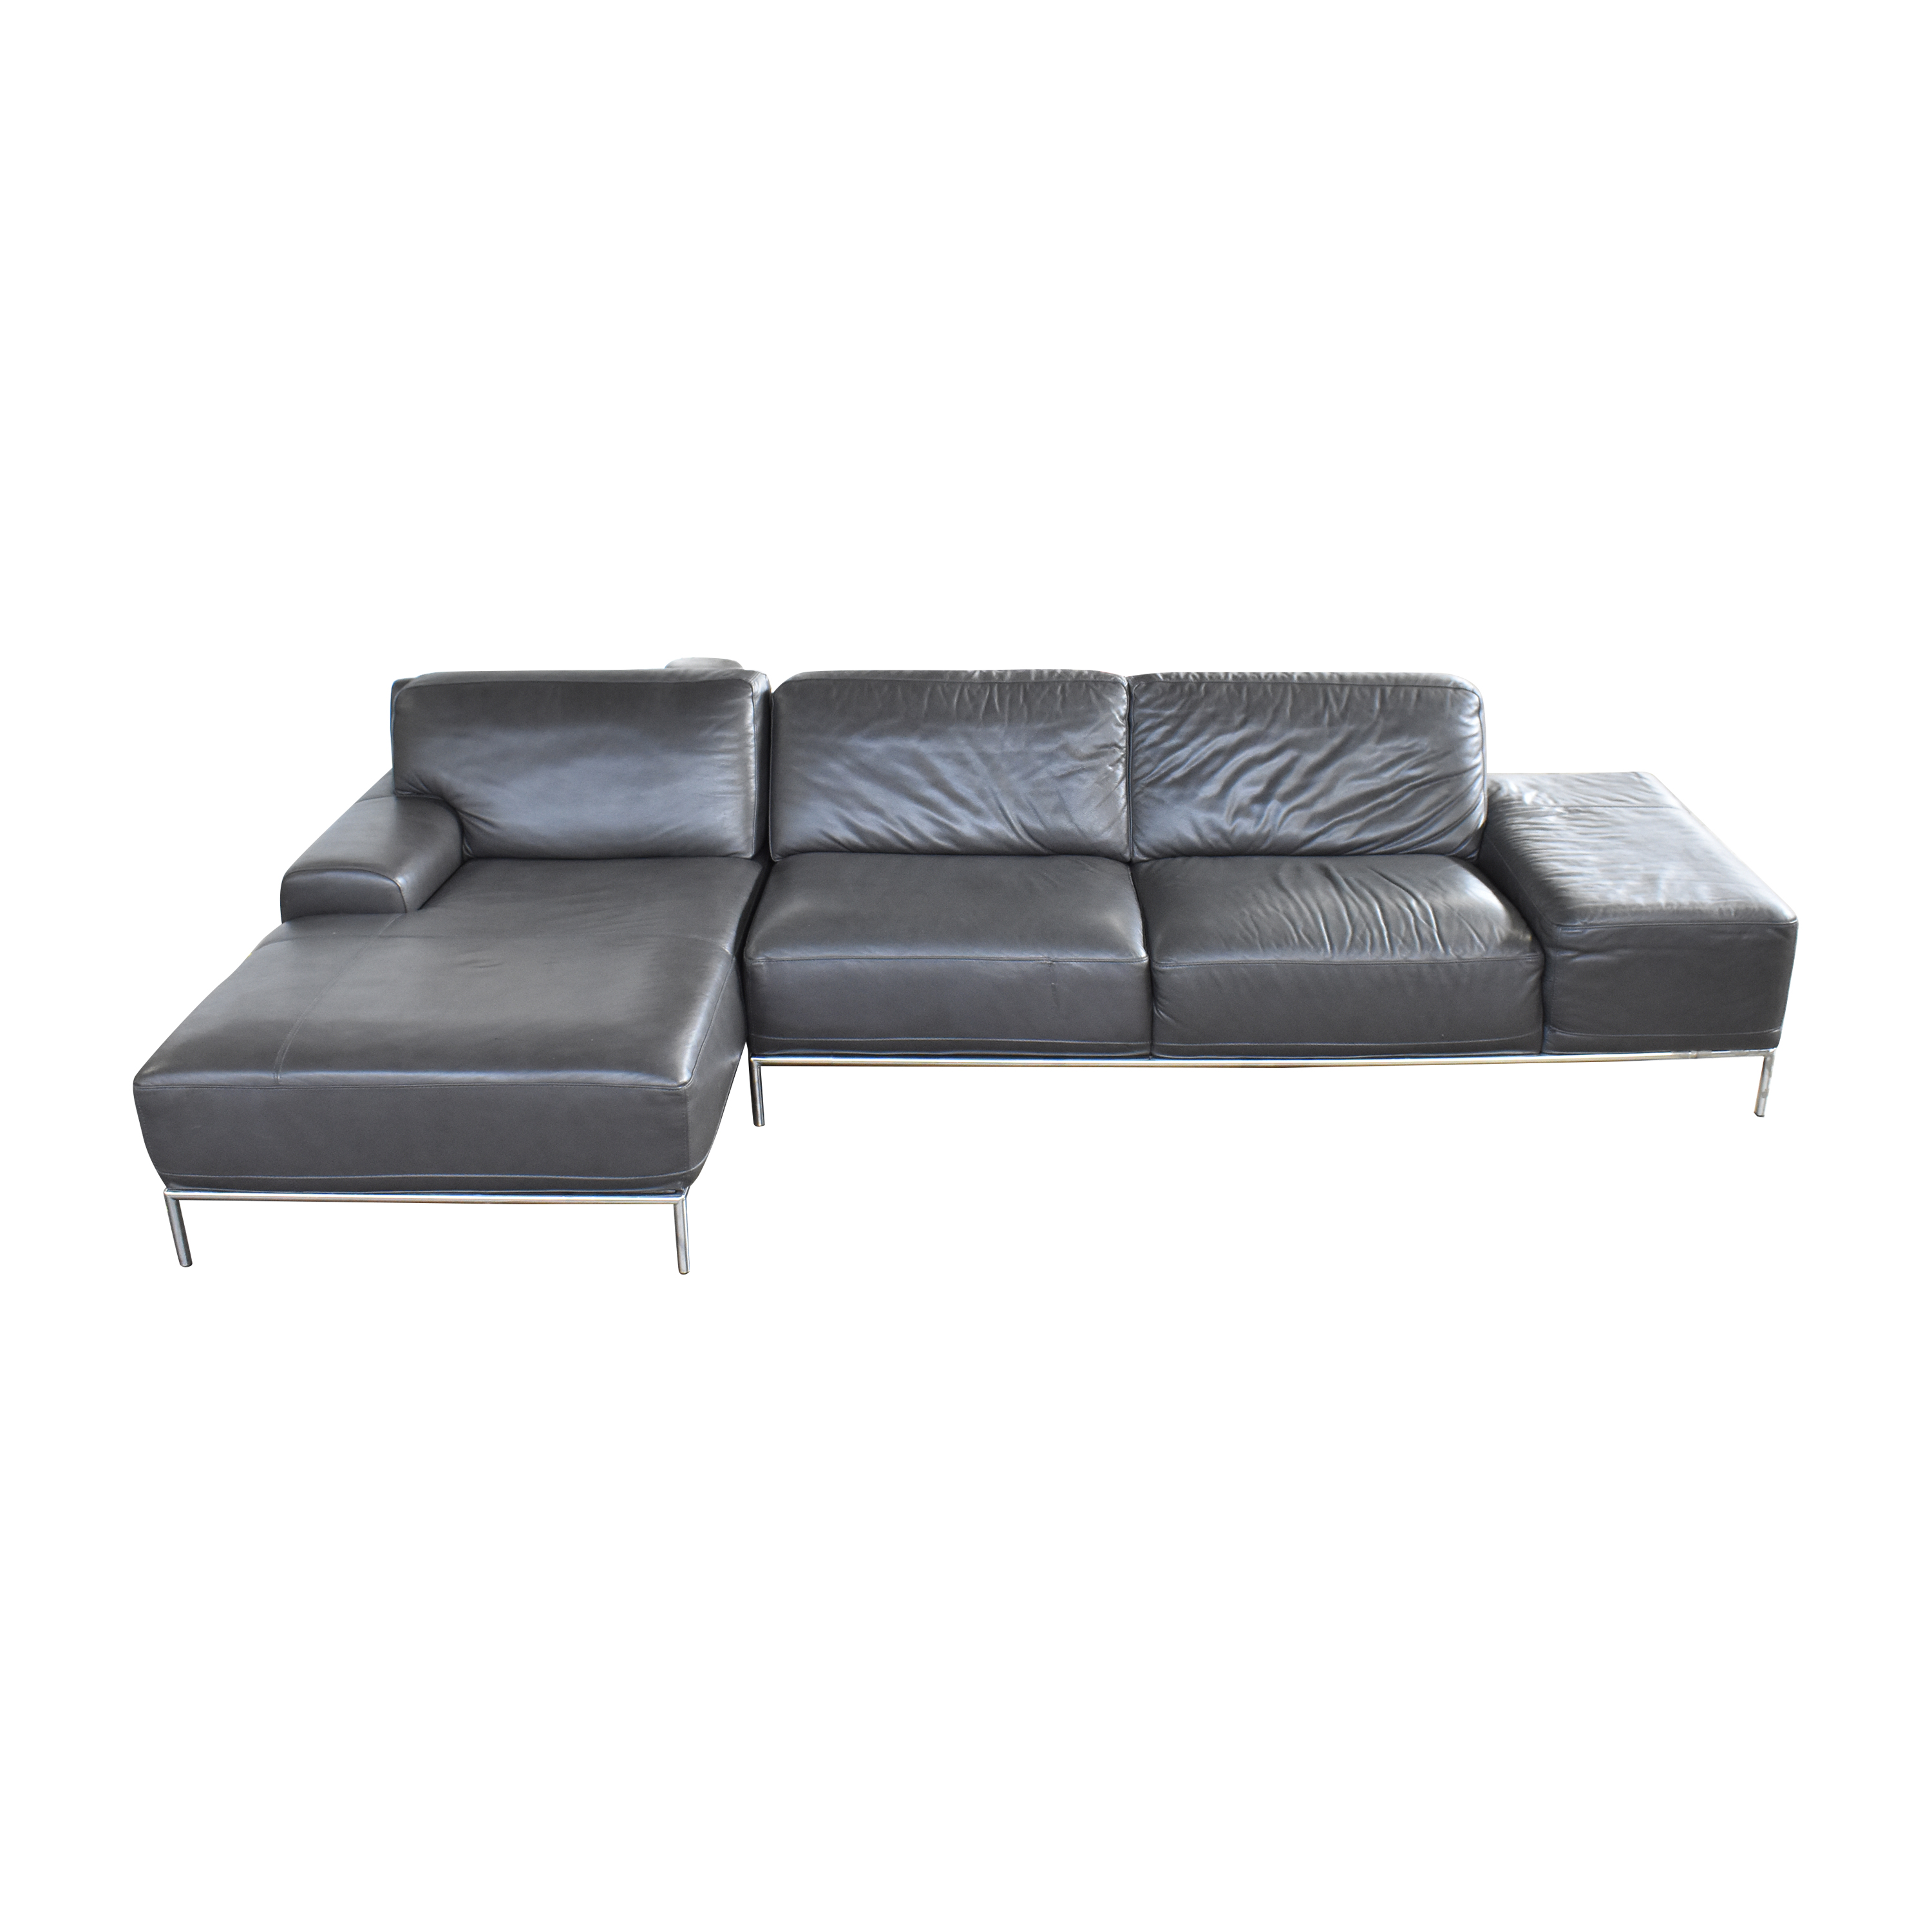 Chateau d'Ax Grey Sectional / Sofas